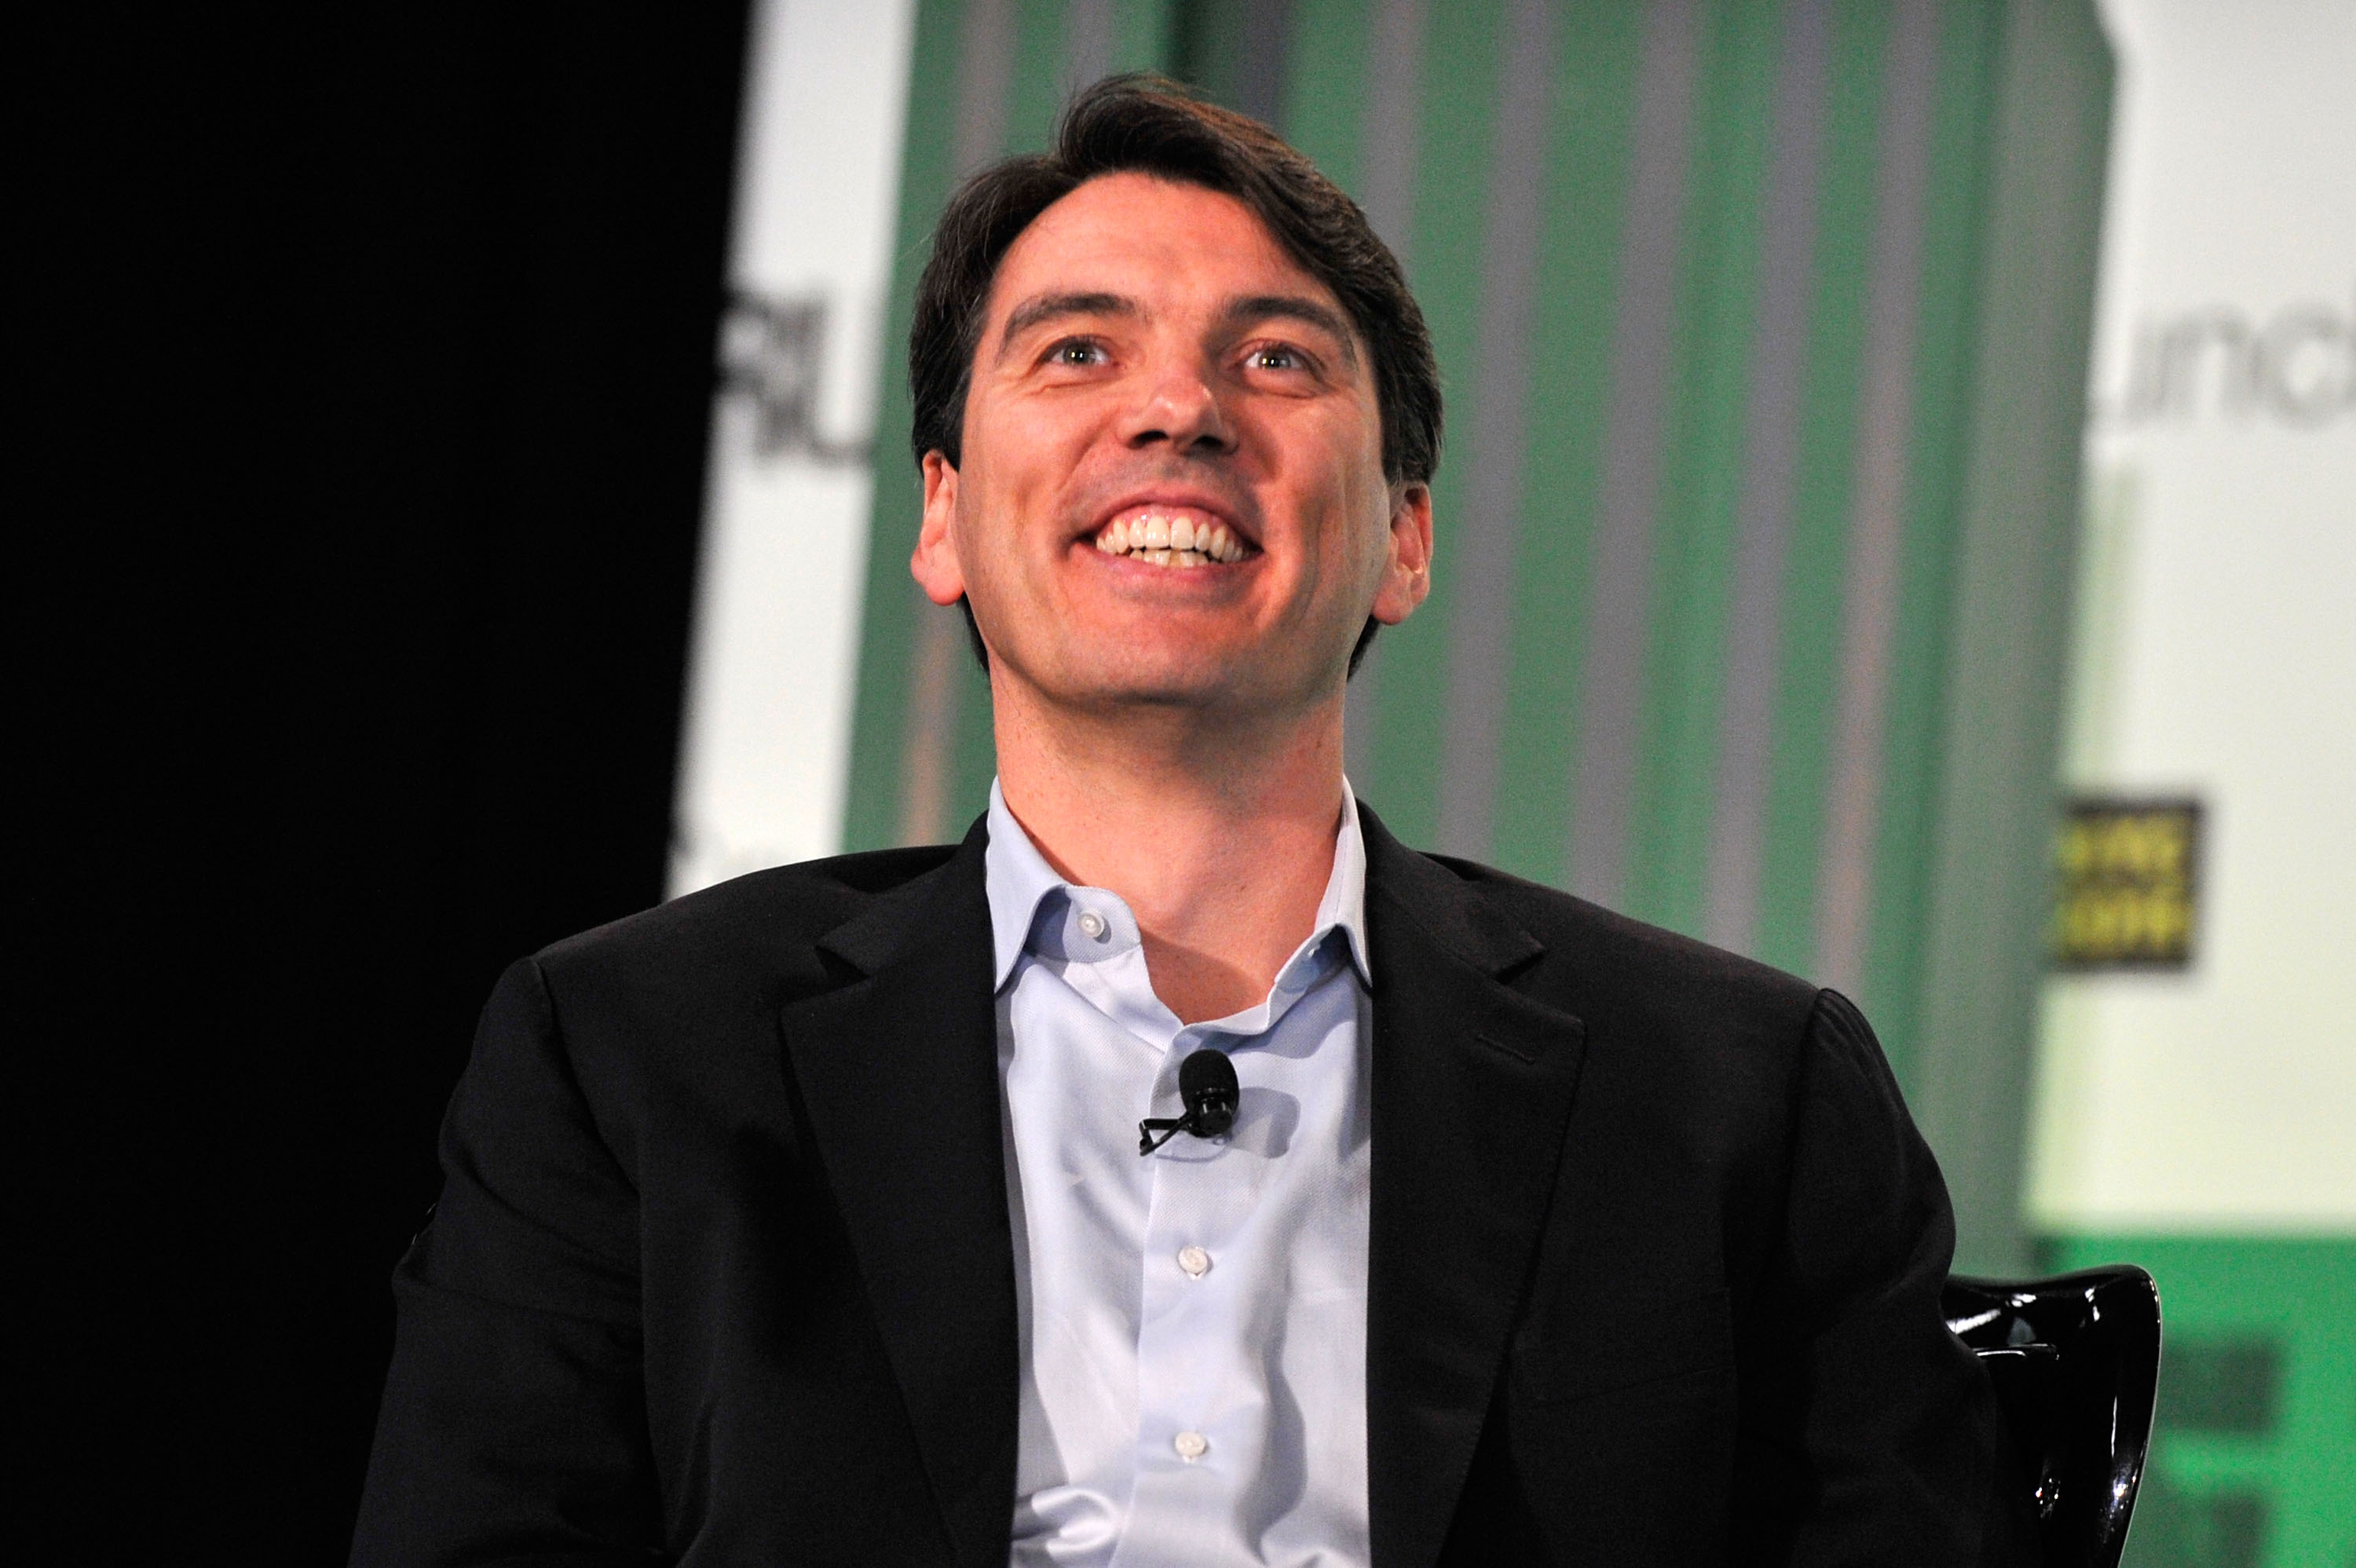 AOL CEO smiling